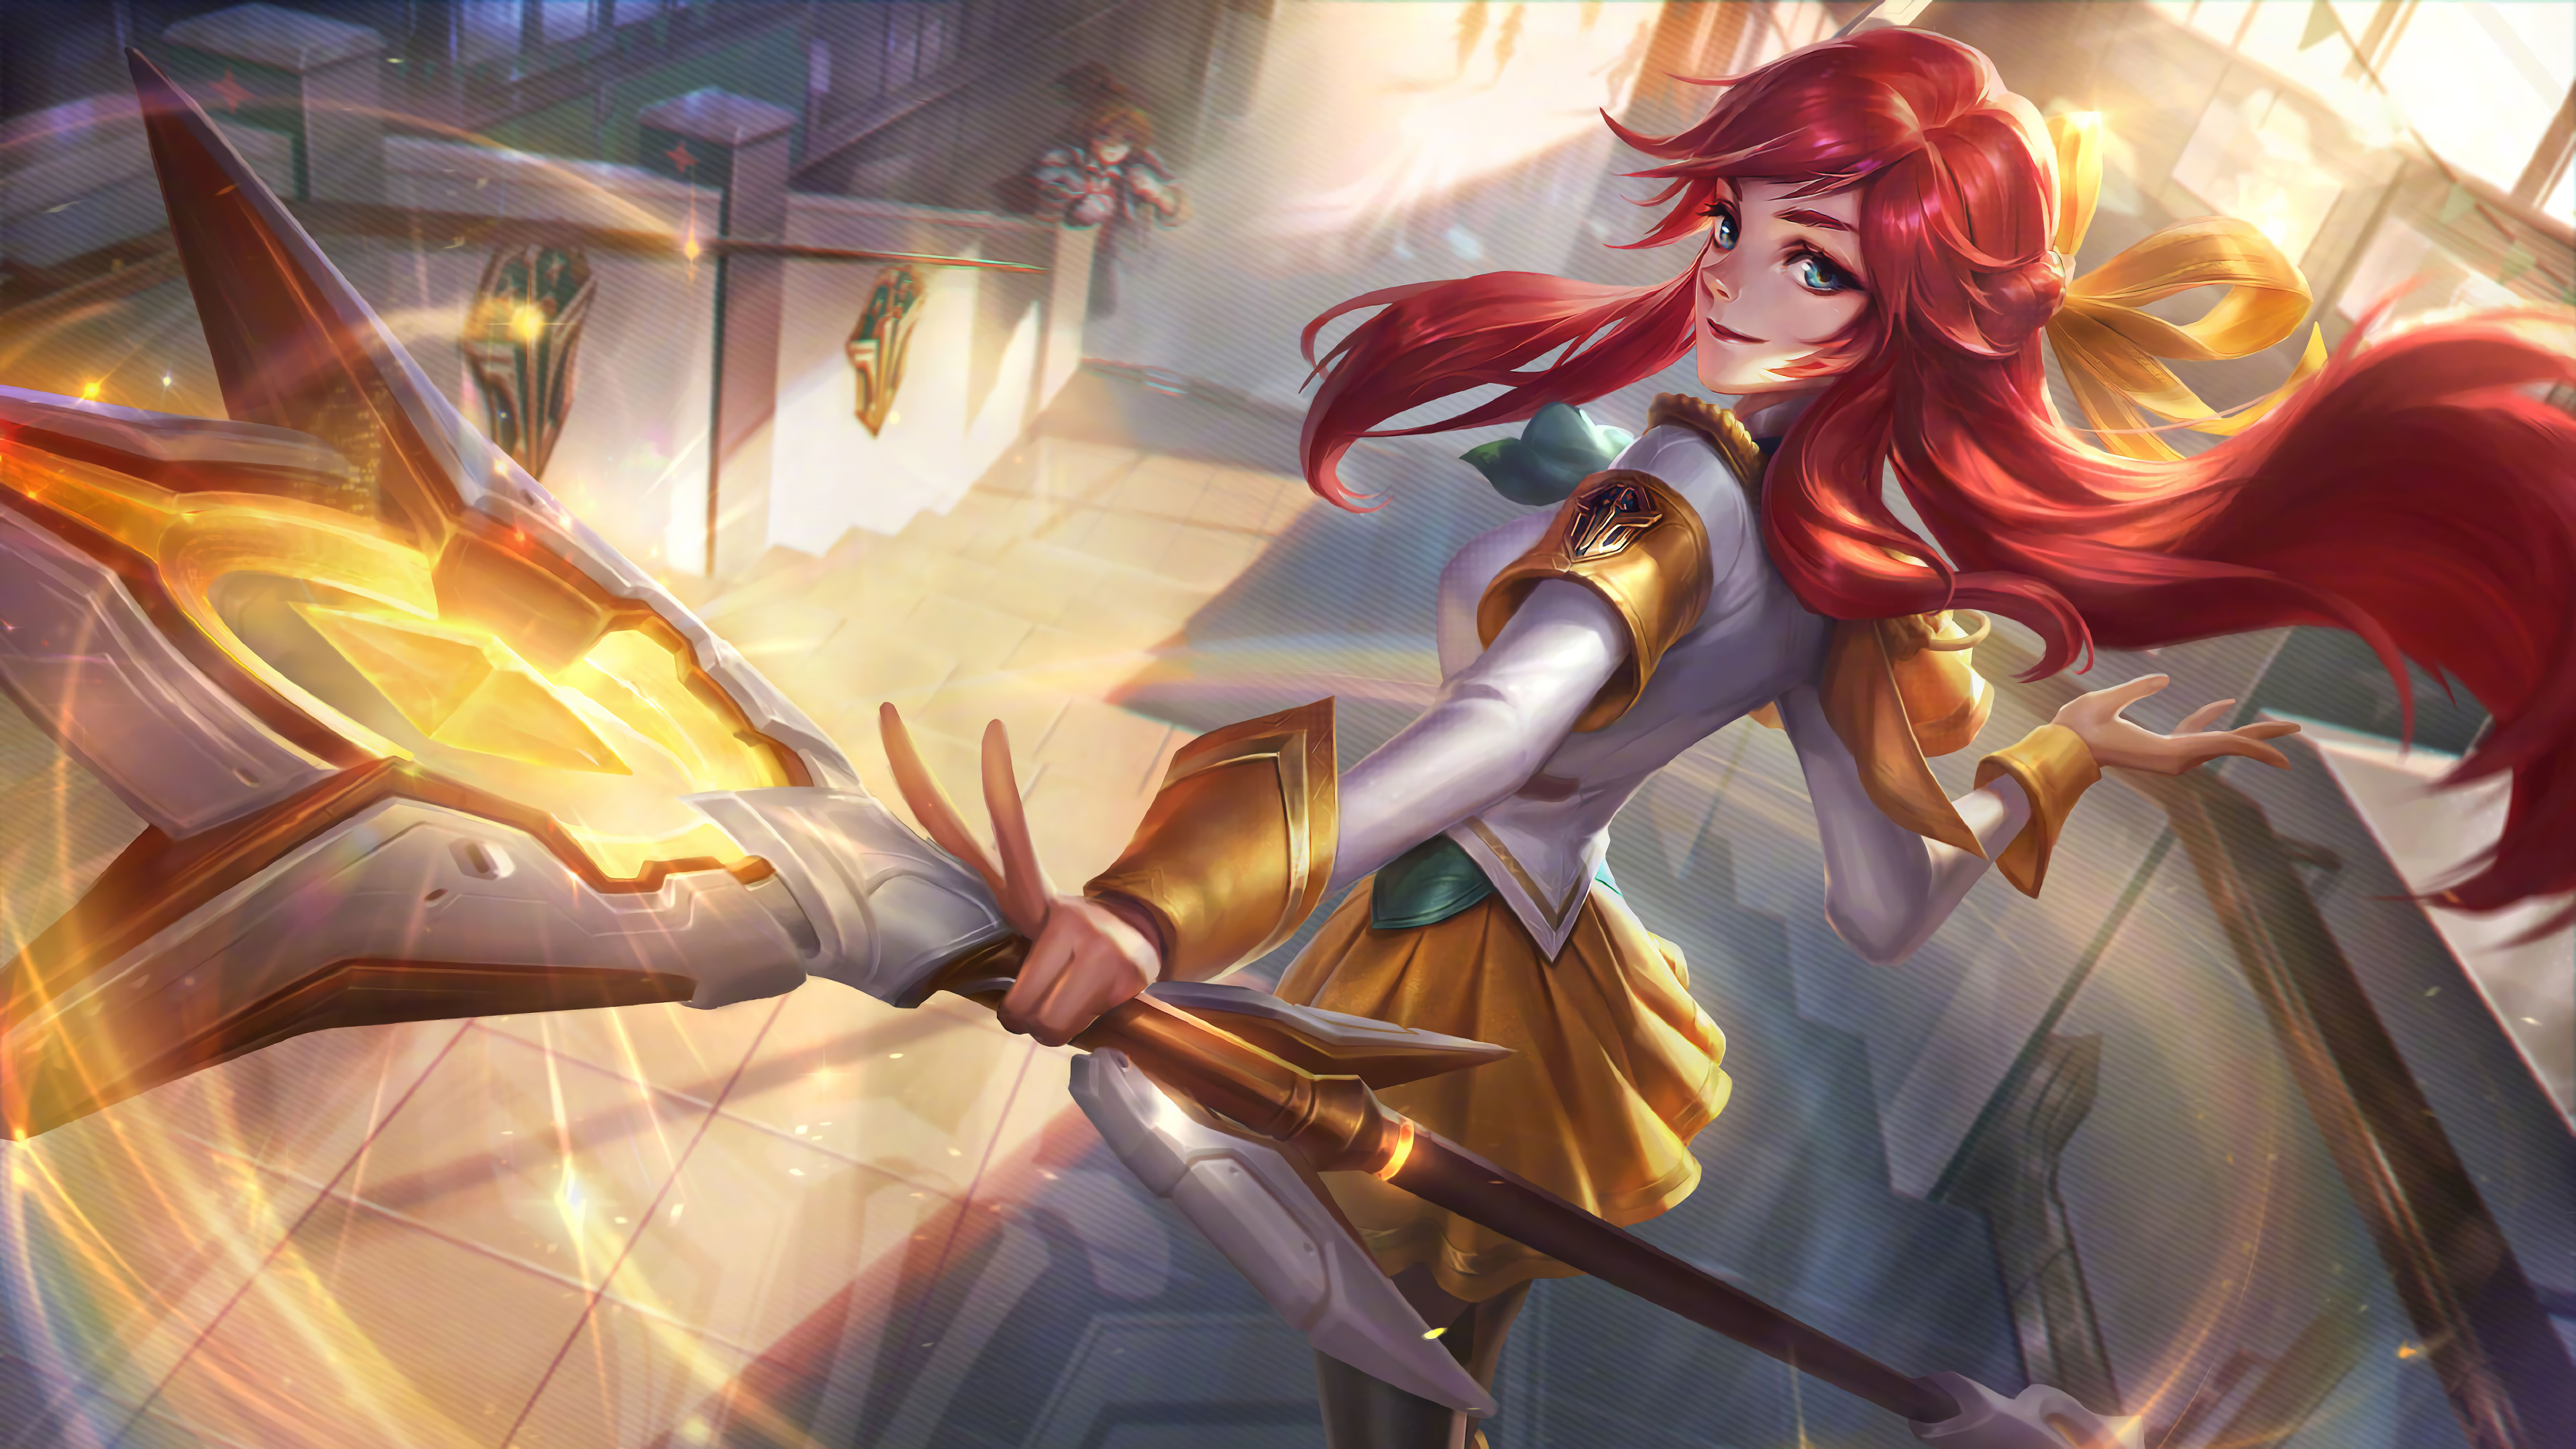 Battle Academia Lux Prestige Edition Splash Art Lol 4k Wallpaper 75